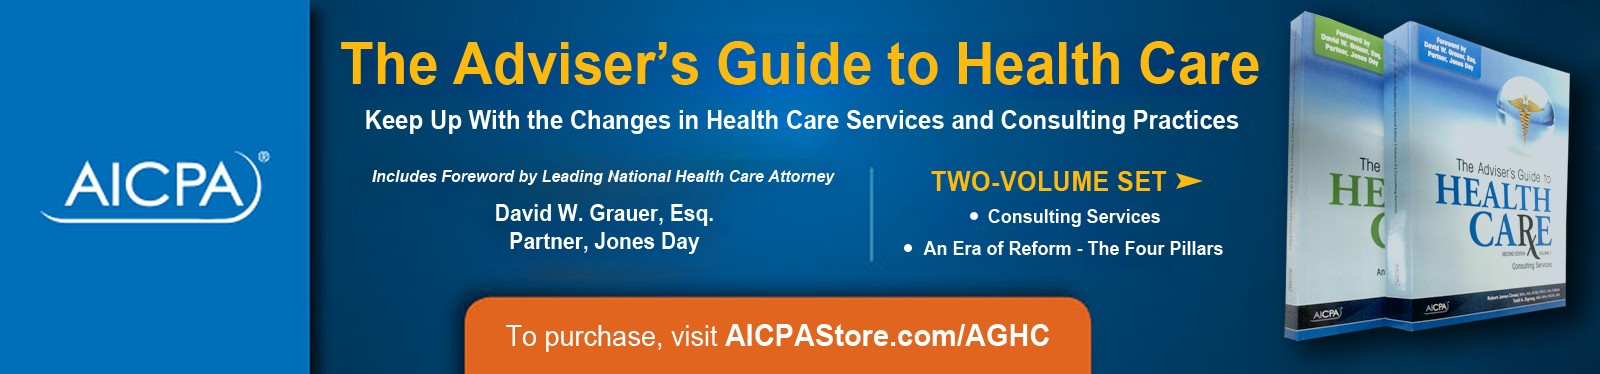 Advisor's Guide to Healthcare Banner